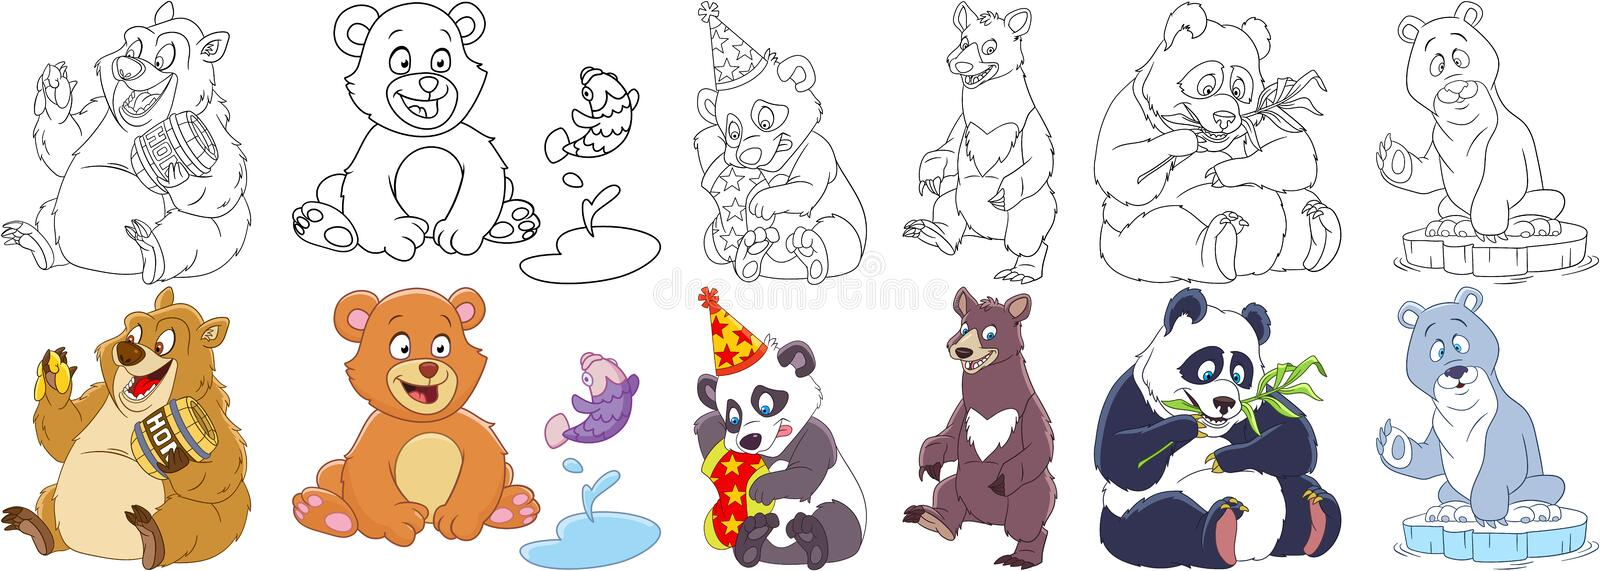 Cartoon bear panda set royalty free stock image